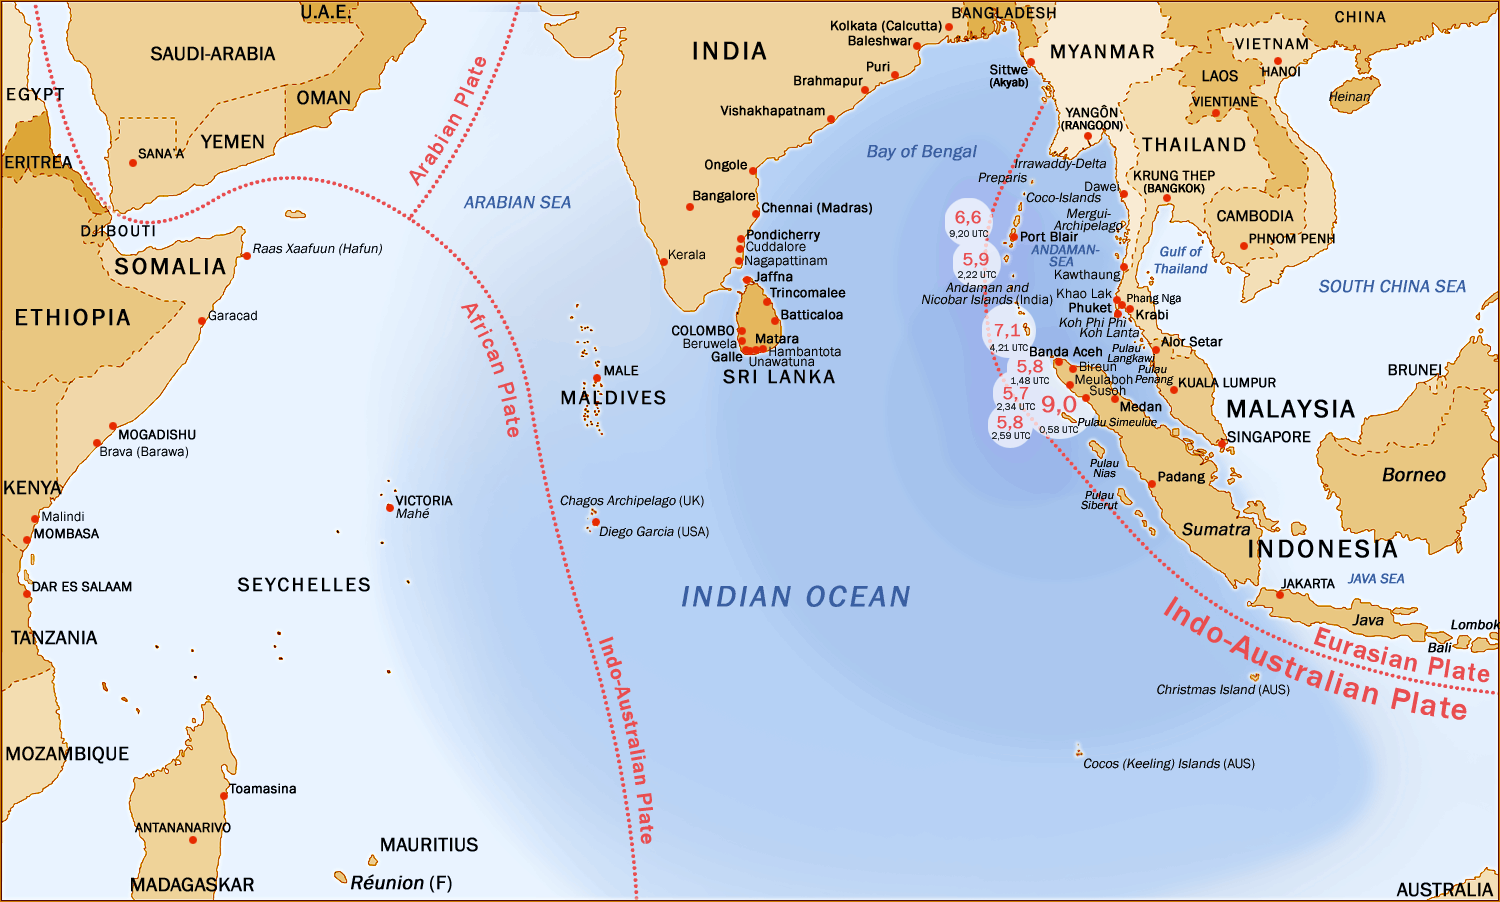 File:Indian Ocean Earthquake2004.png